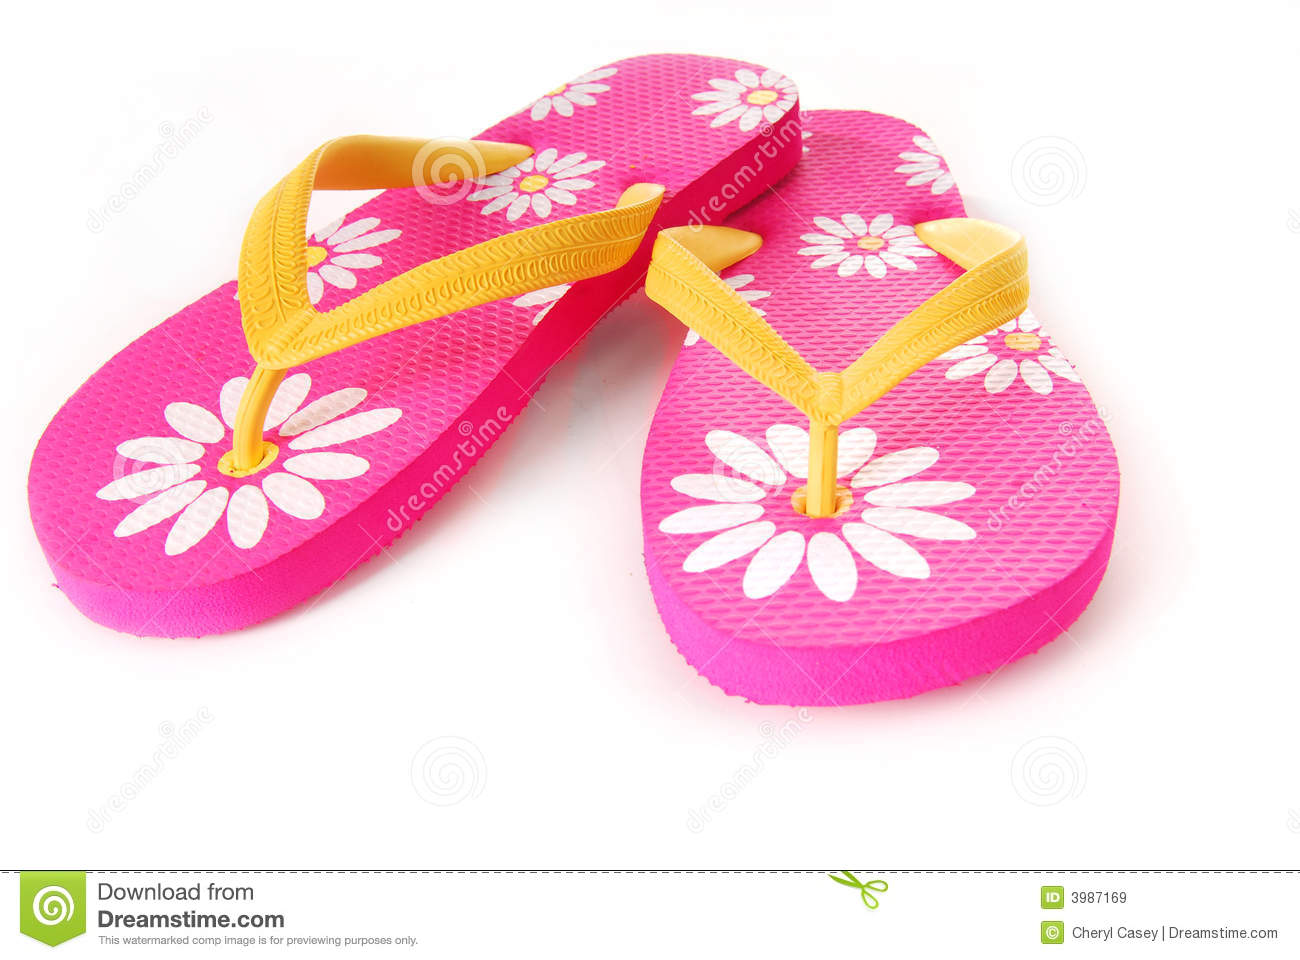 e951de039b50be Bright Colored Flip Flops stock image. Image of clothing - 3987169